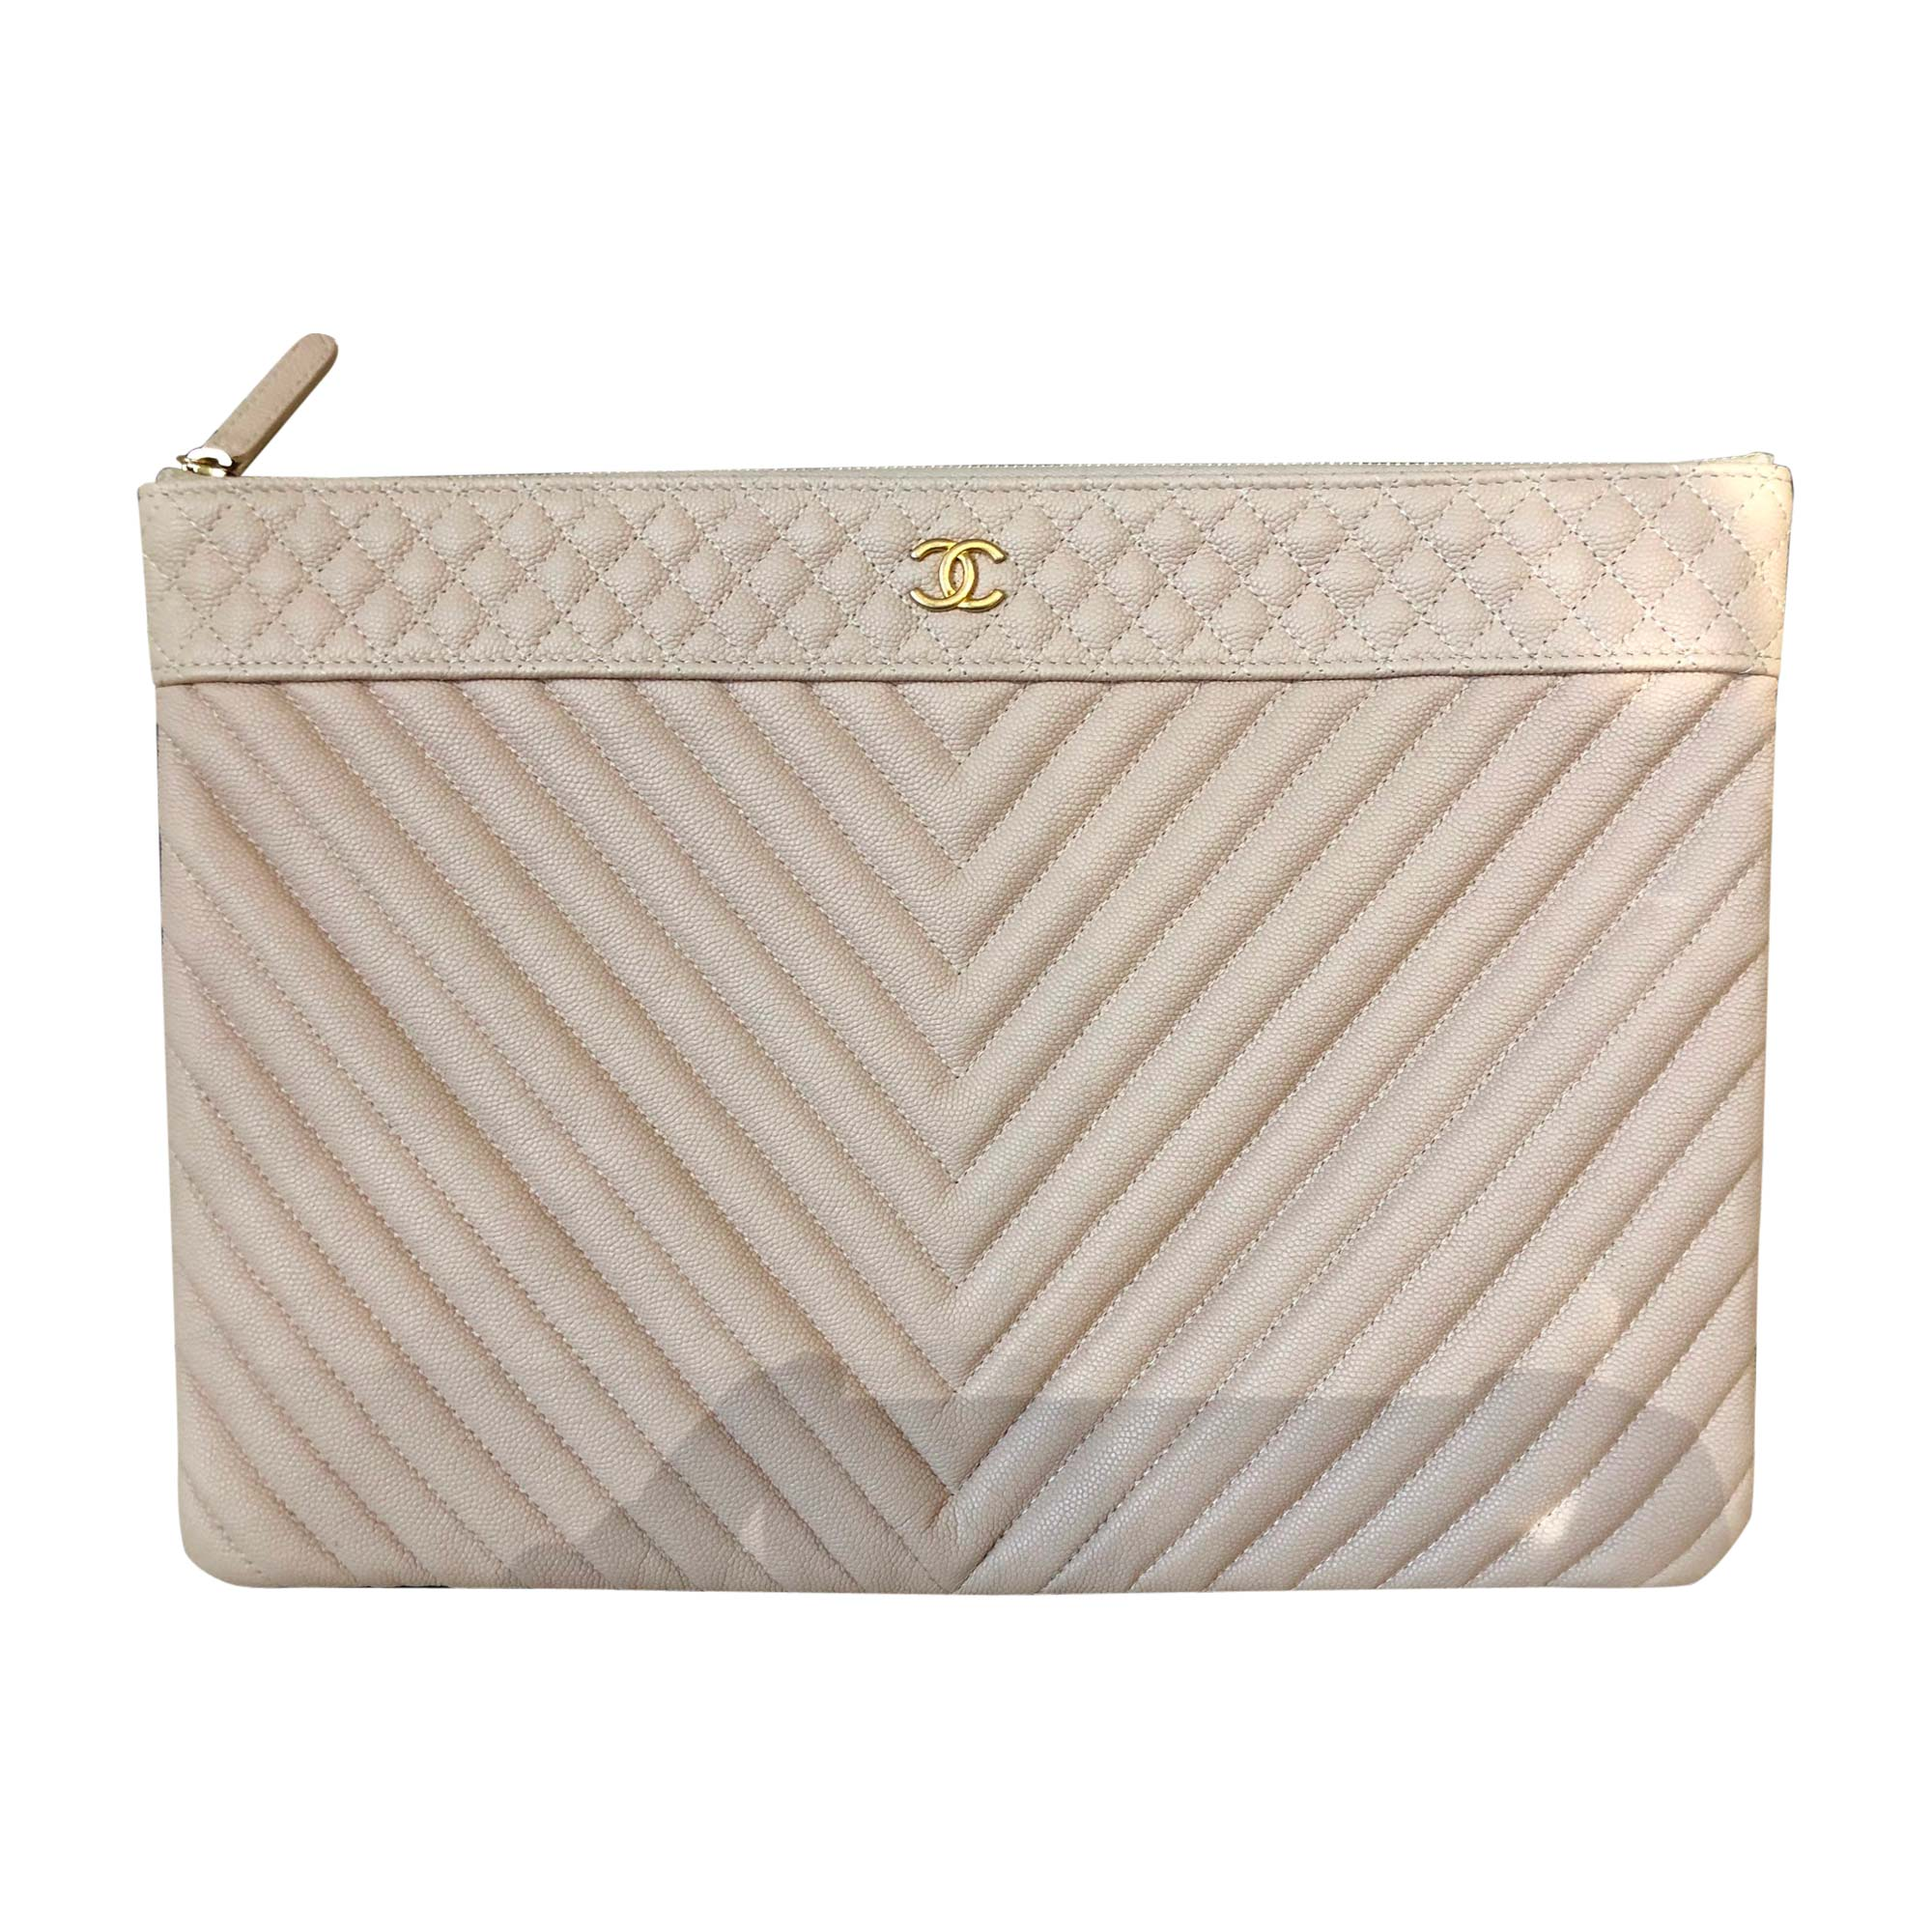 Pochette CHANEL nude beige rosee - 8485615 a79a53dac05